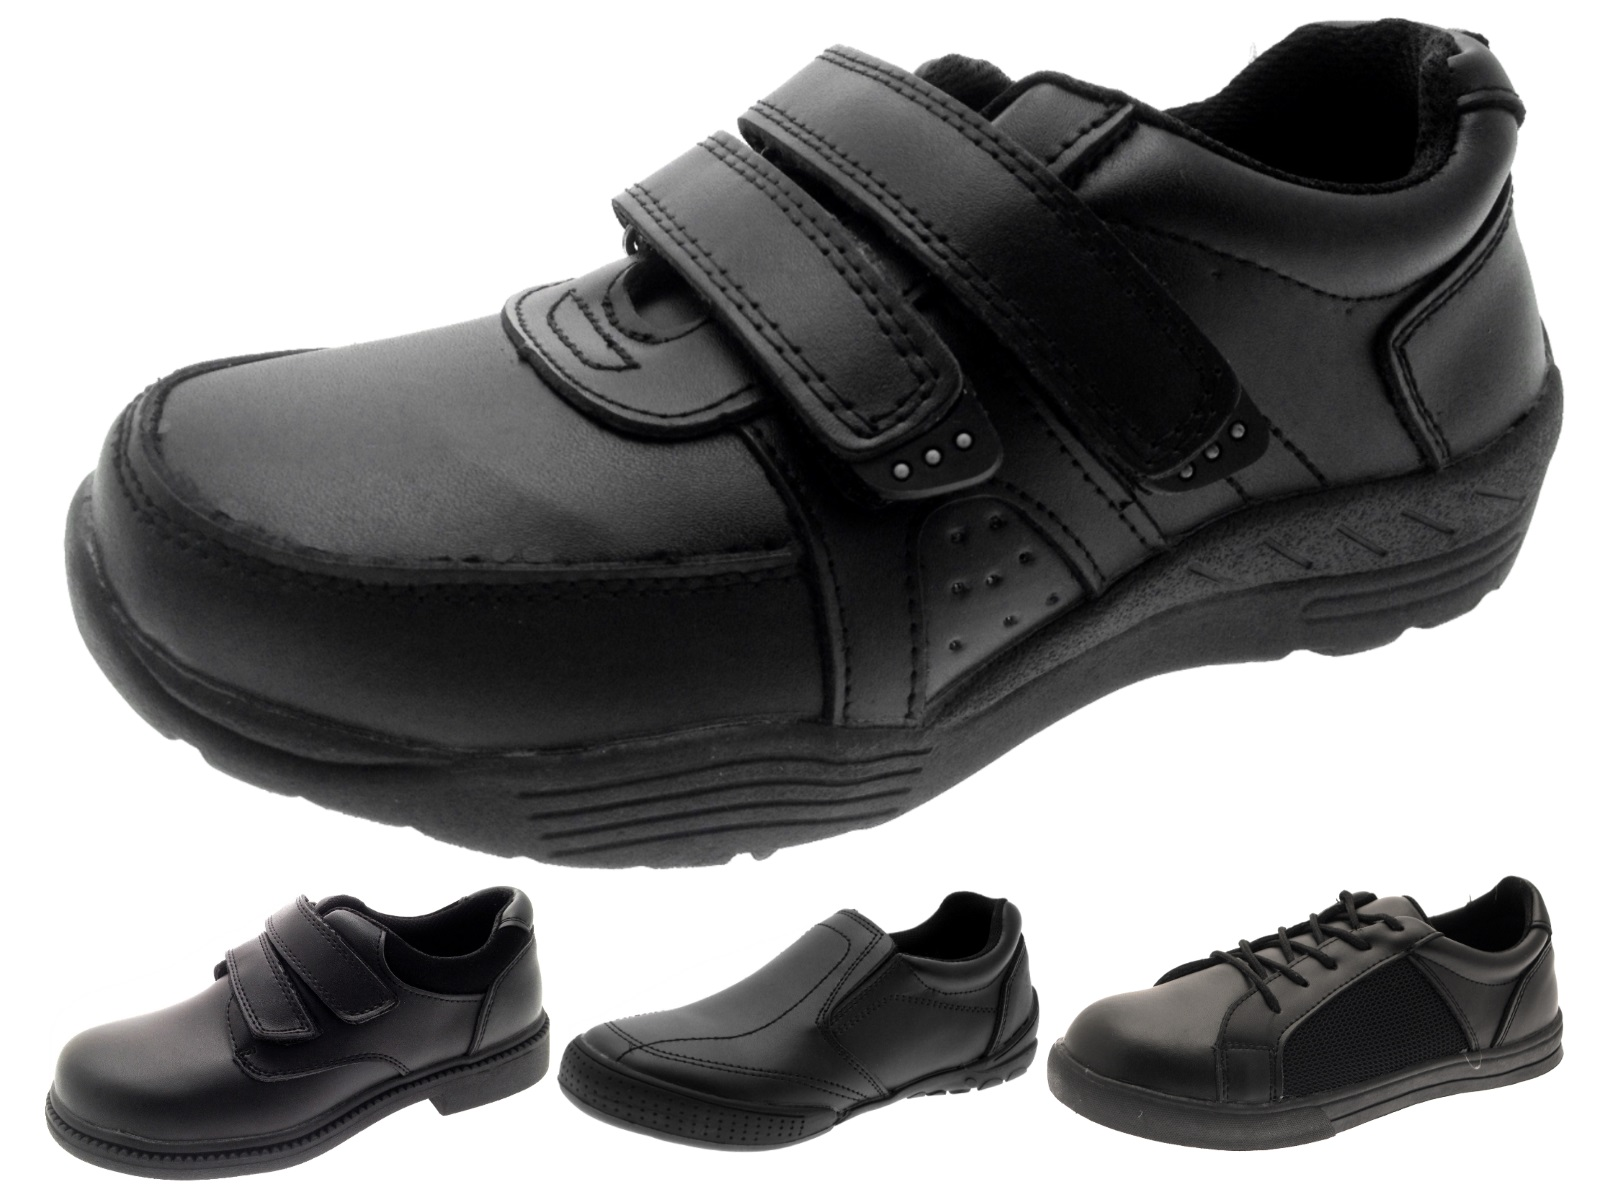 Boys Black Leather School Shoes Lace Up